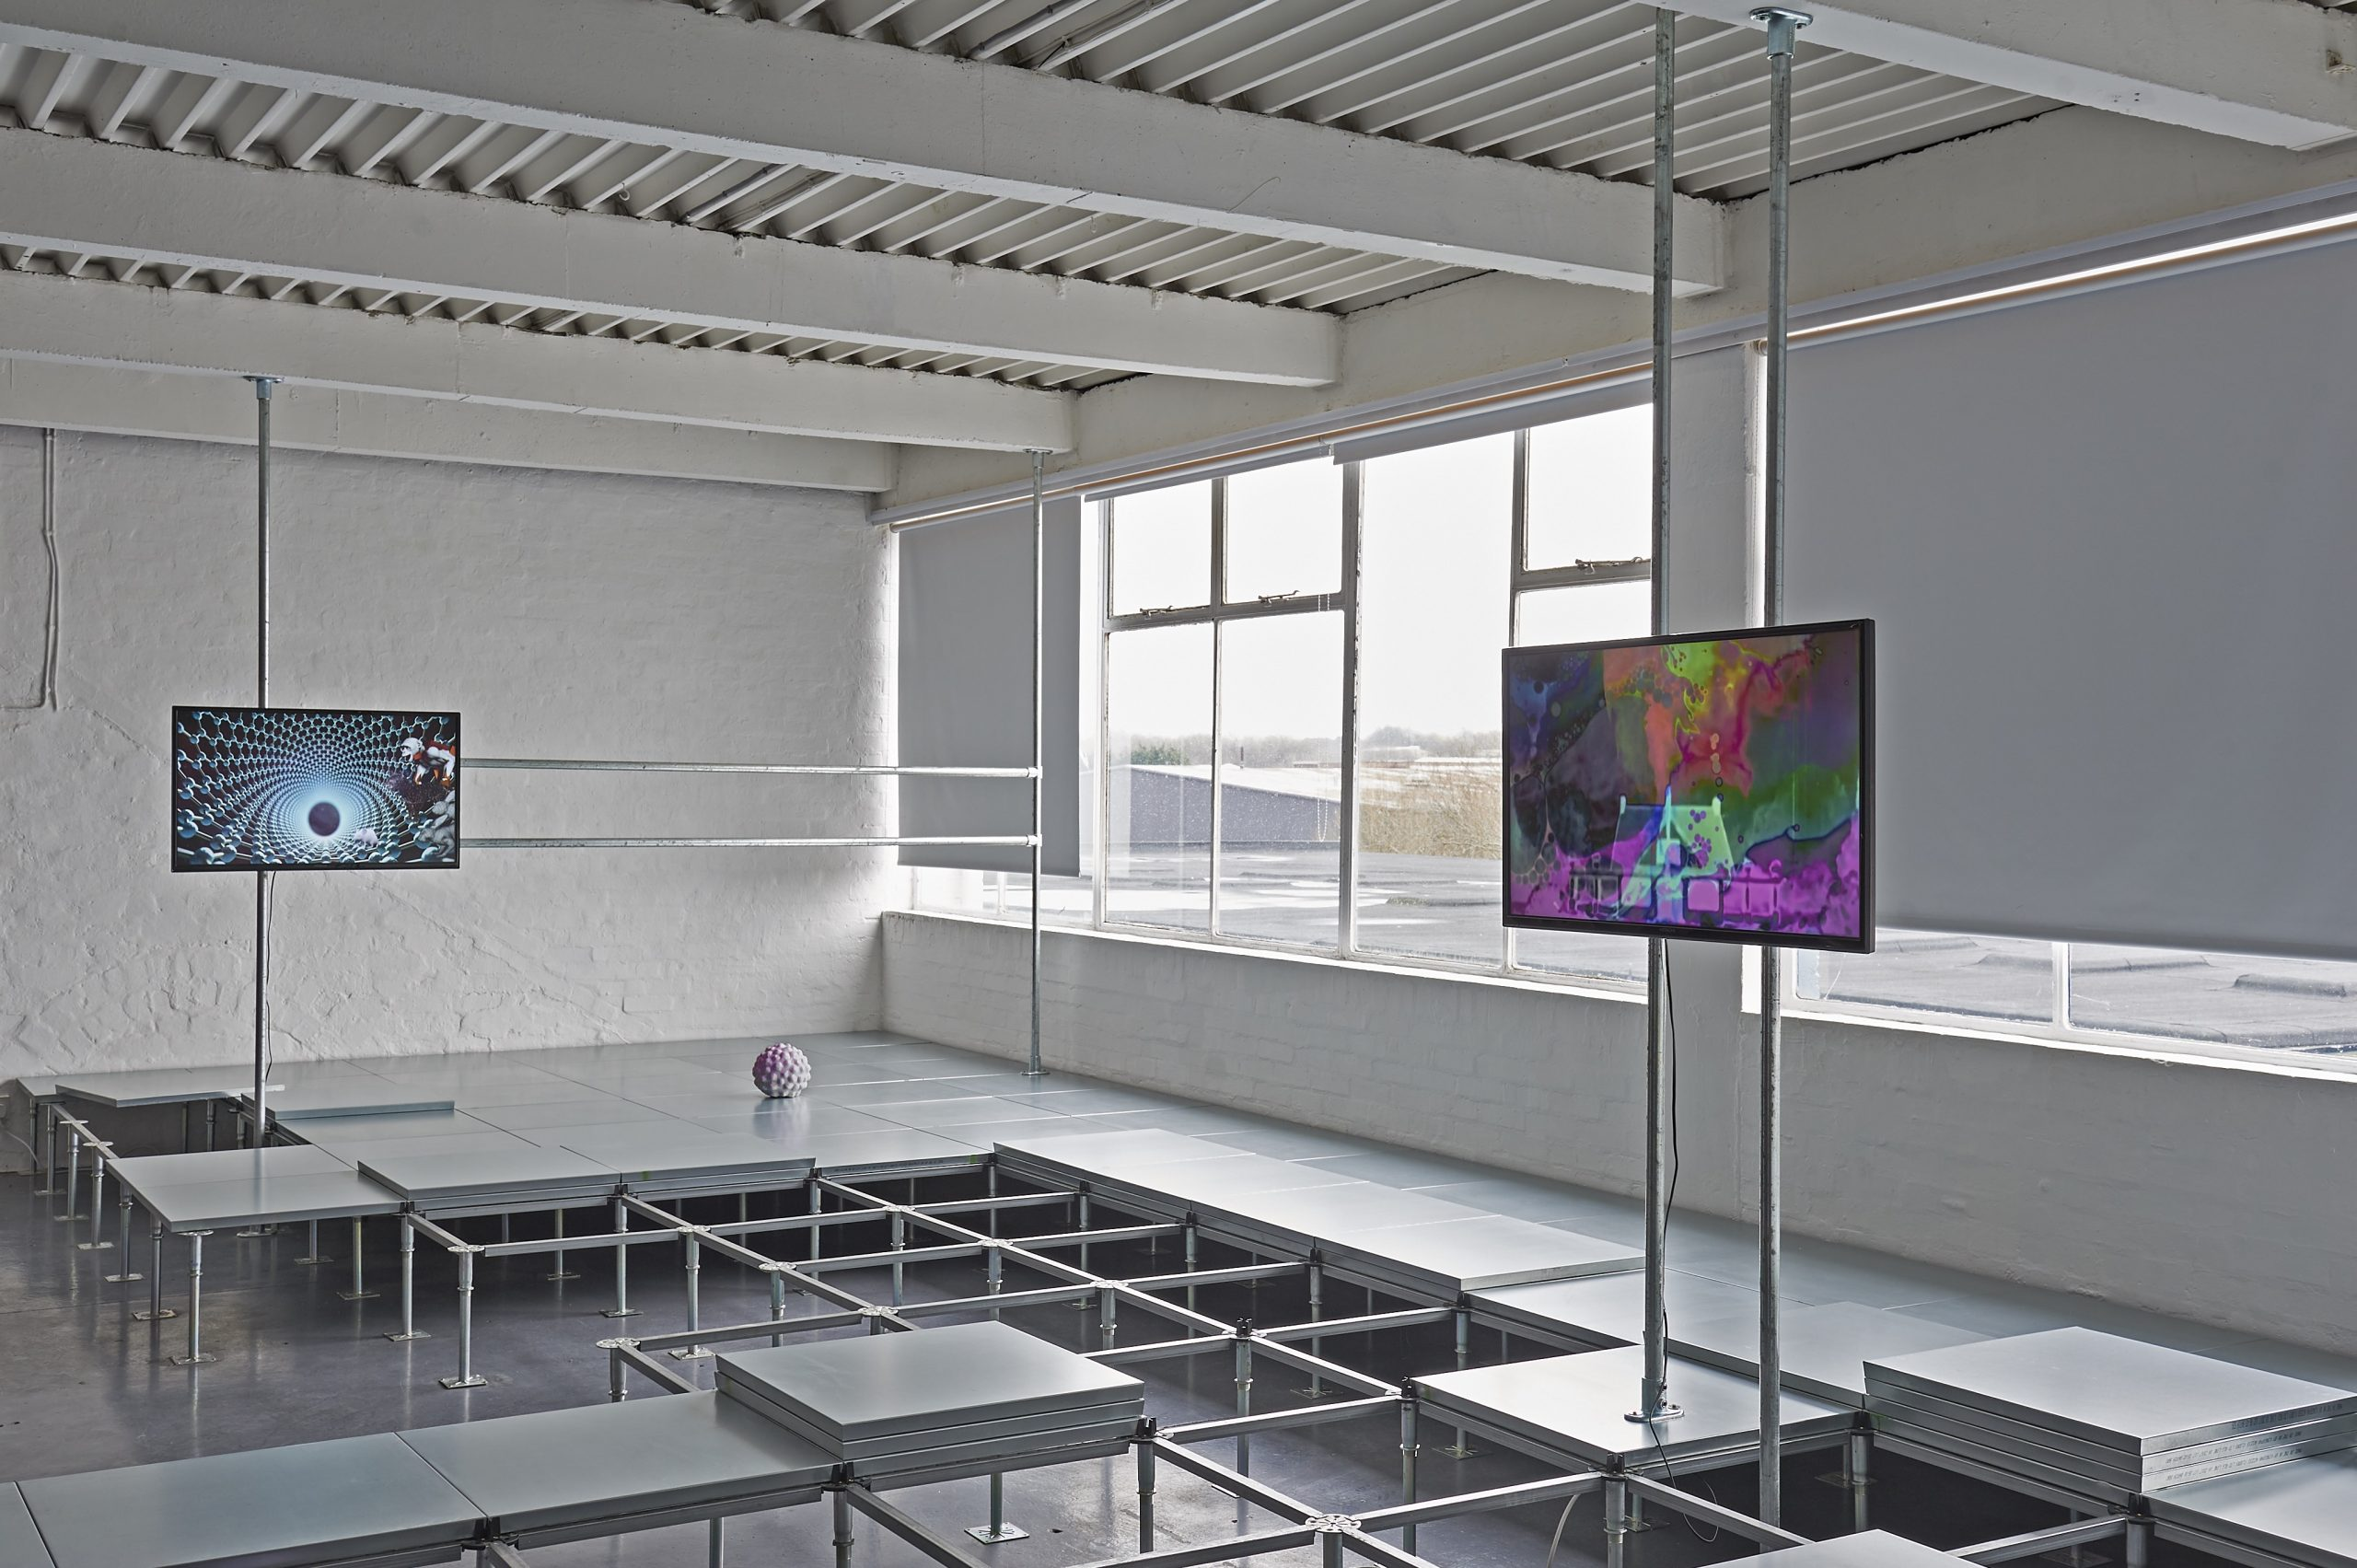 Metal squares form a raised platform across the floor. Videos are showing on two TVs mounted above on scaffold.